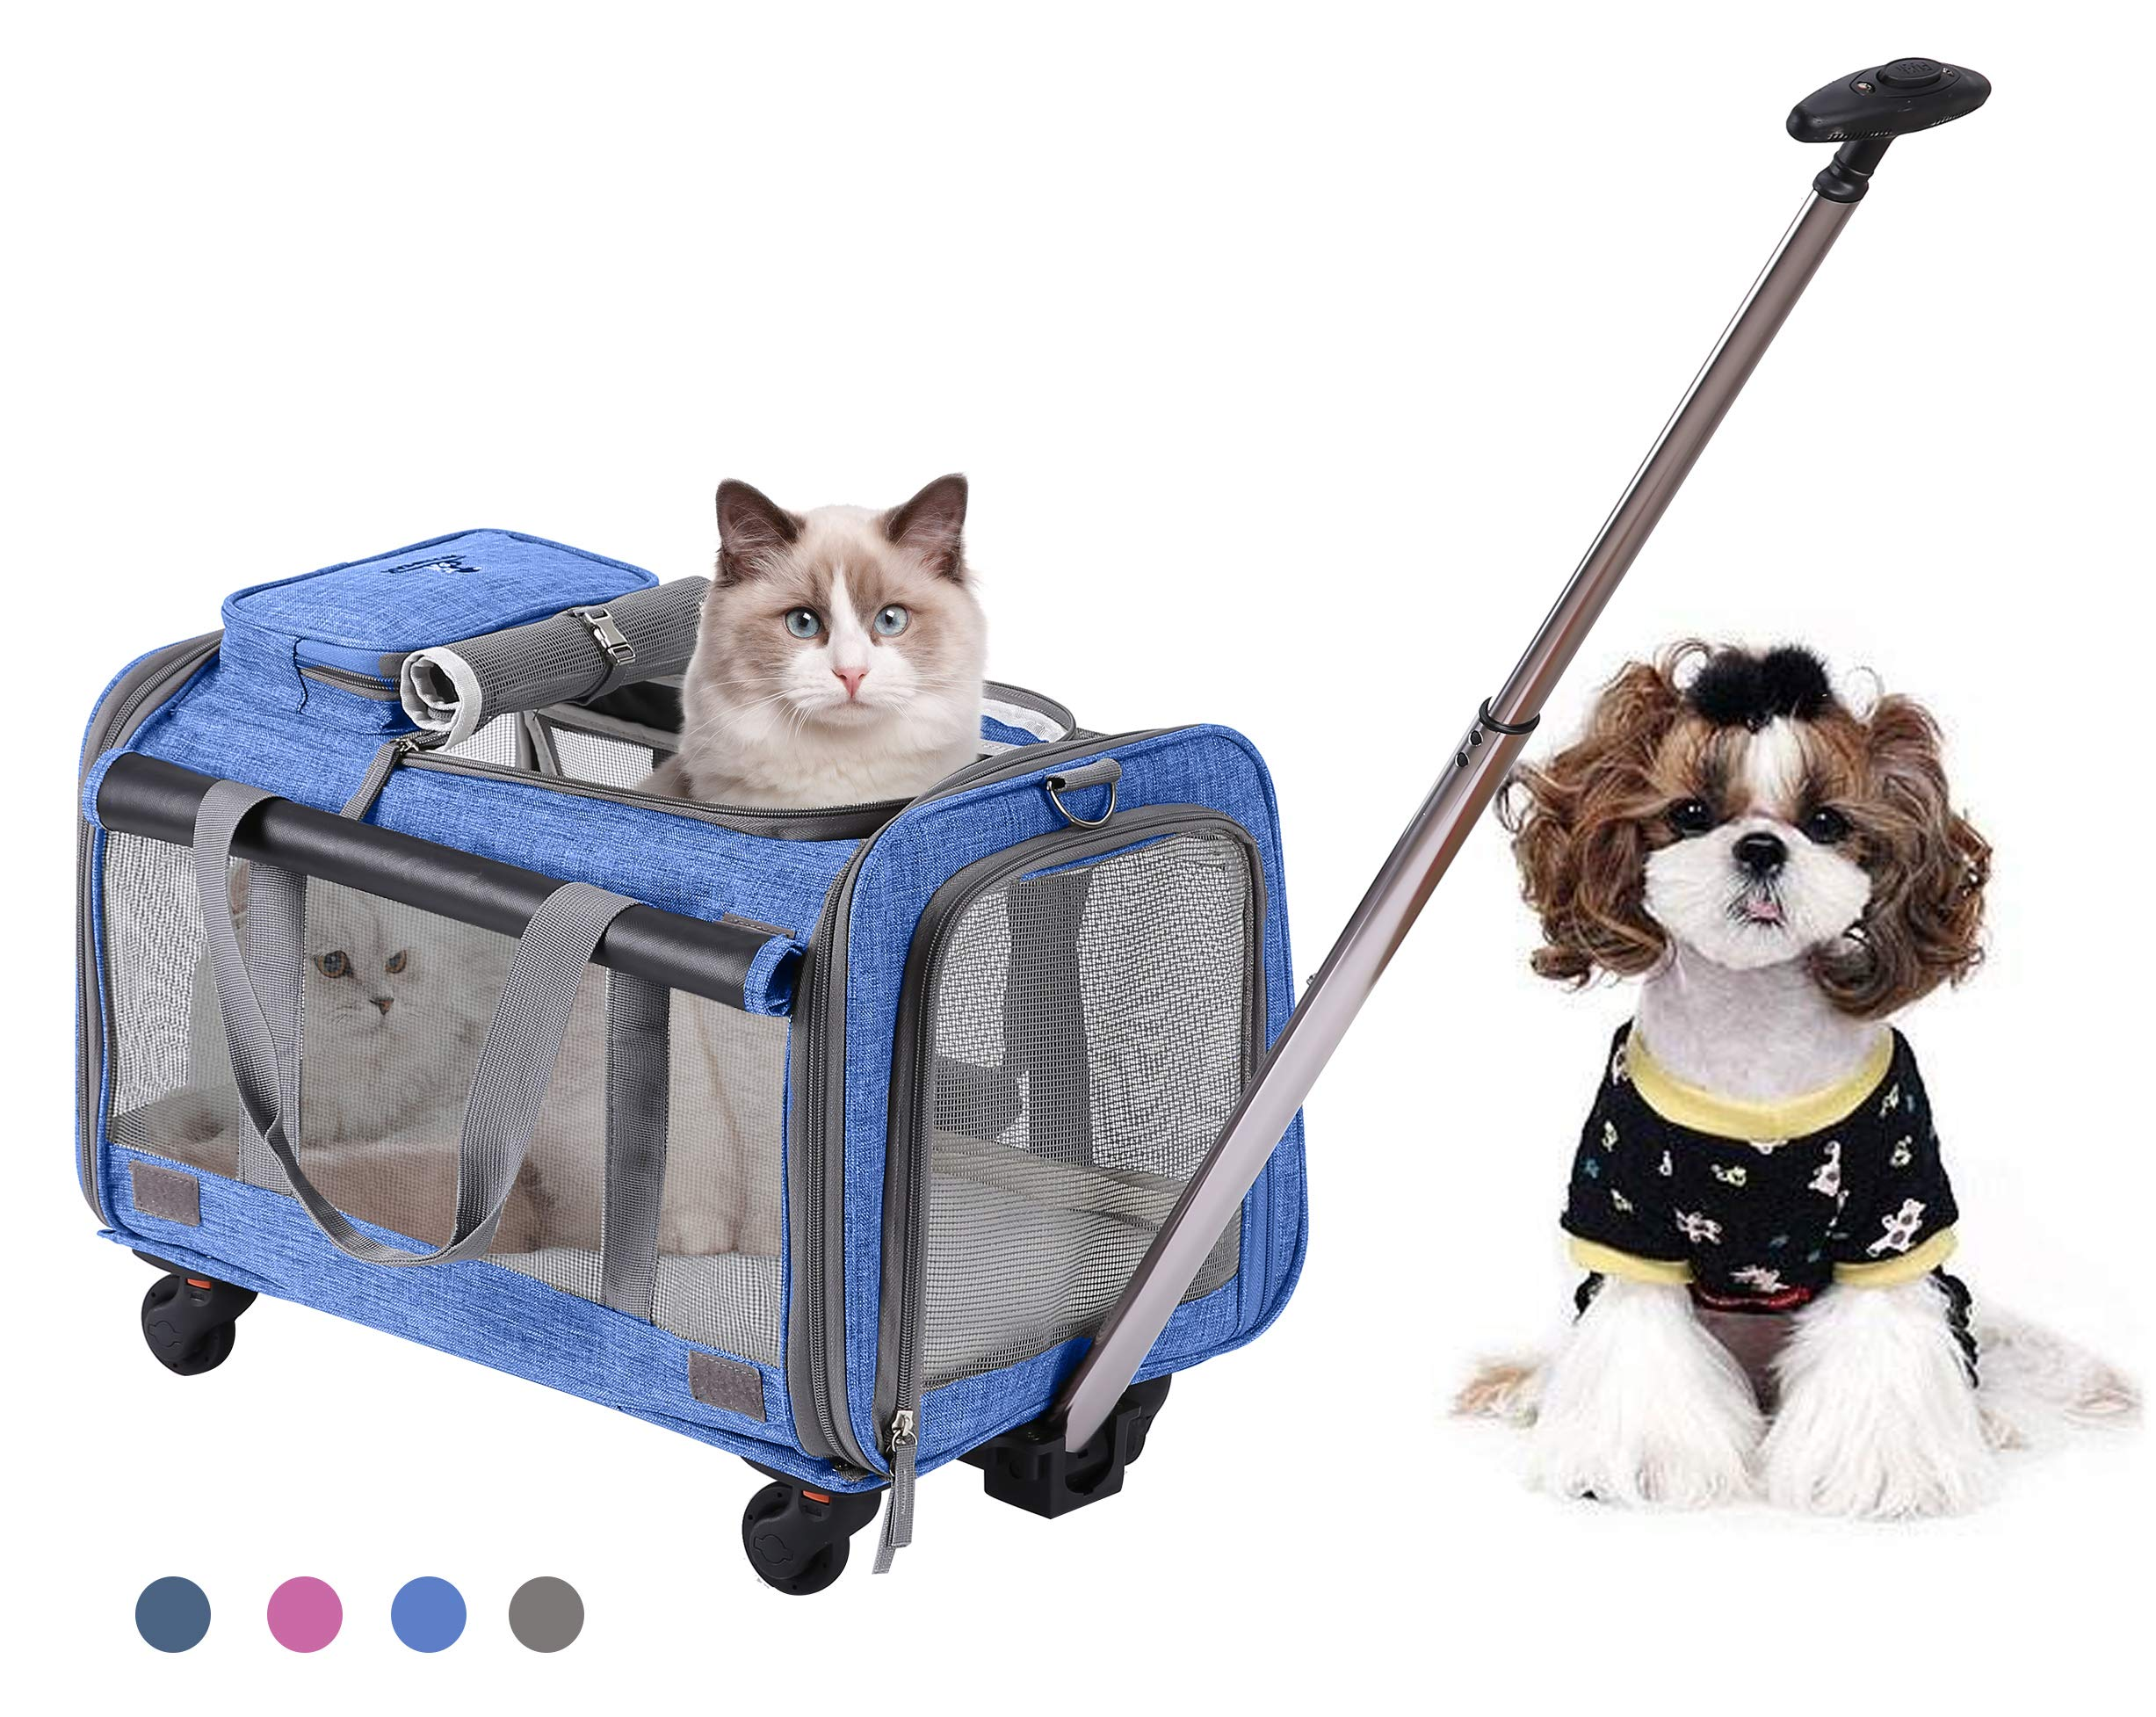 MOVEPEAK PET Carrier with Wheel, Luxury Pet Bag Strollers with Comfortable Fleece Mat for Travel, Hiking,Camping, Designed for Cats, Dogs, Kittens, Puppies, 360° Swivel Mute Wheels (Royal Blue)